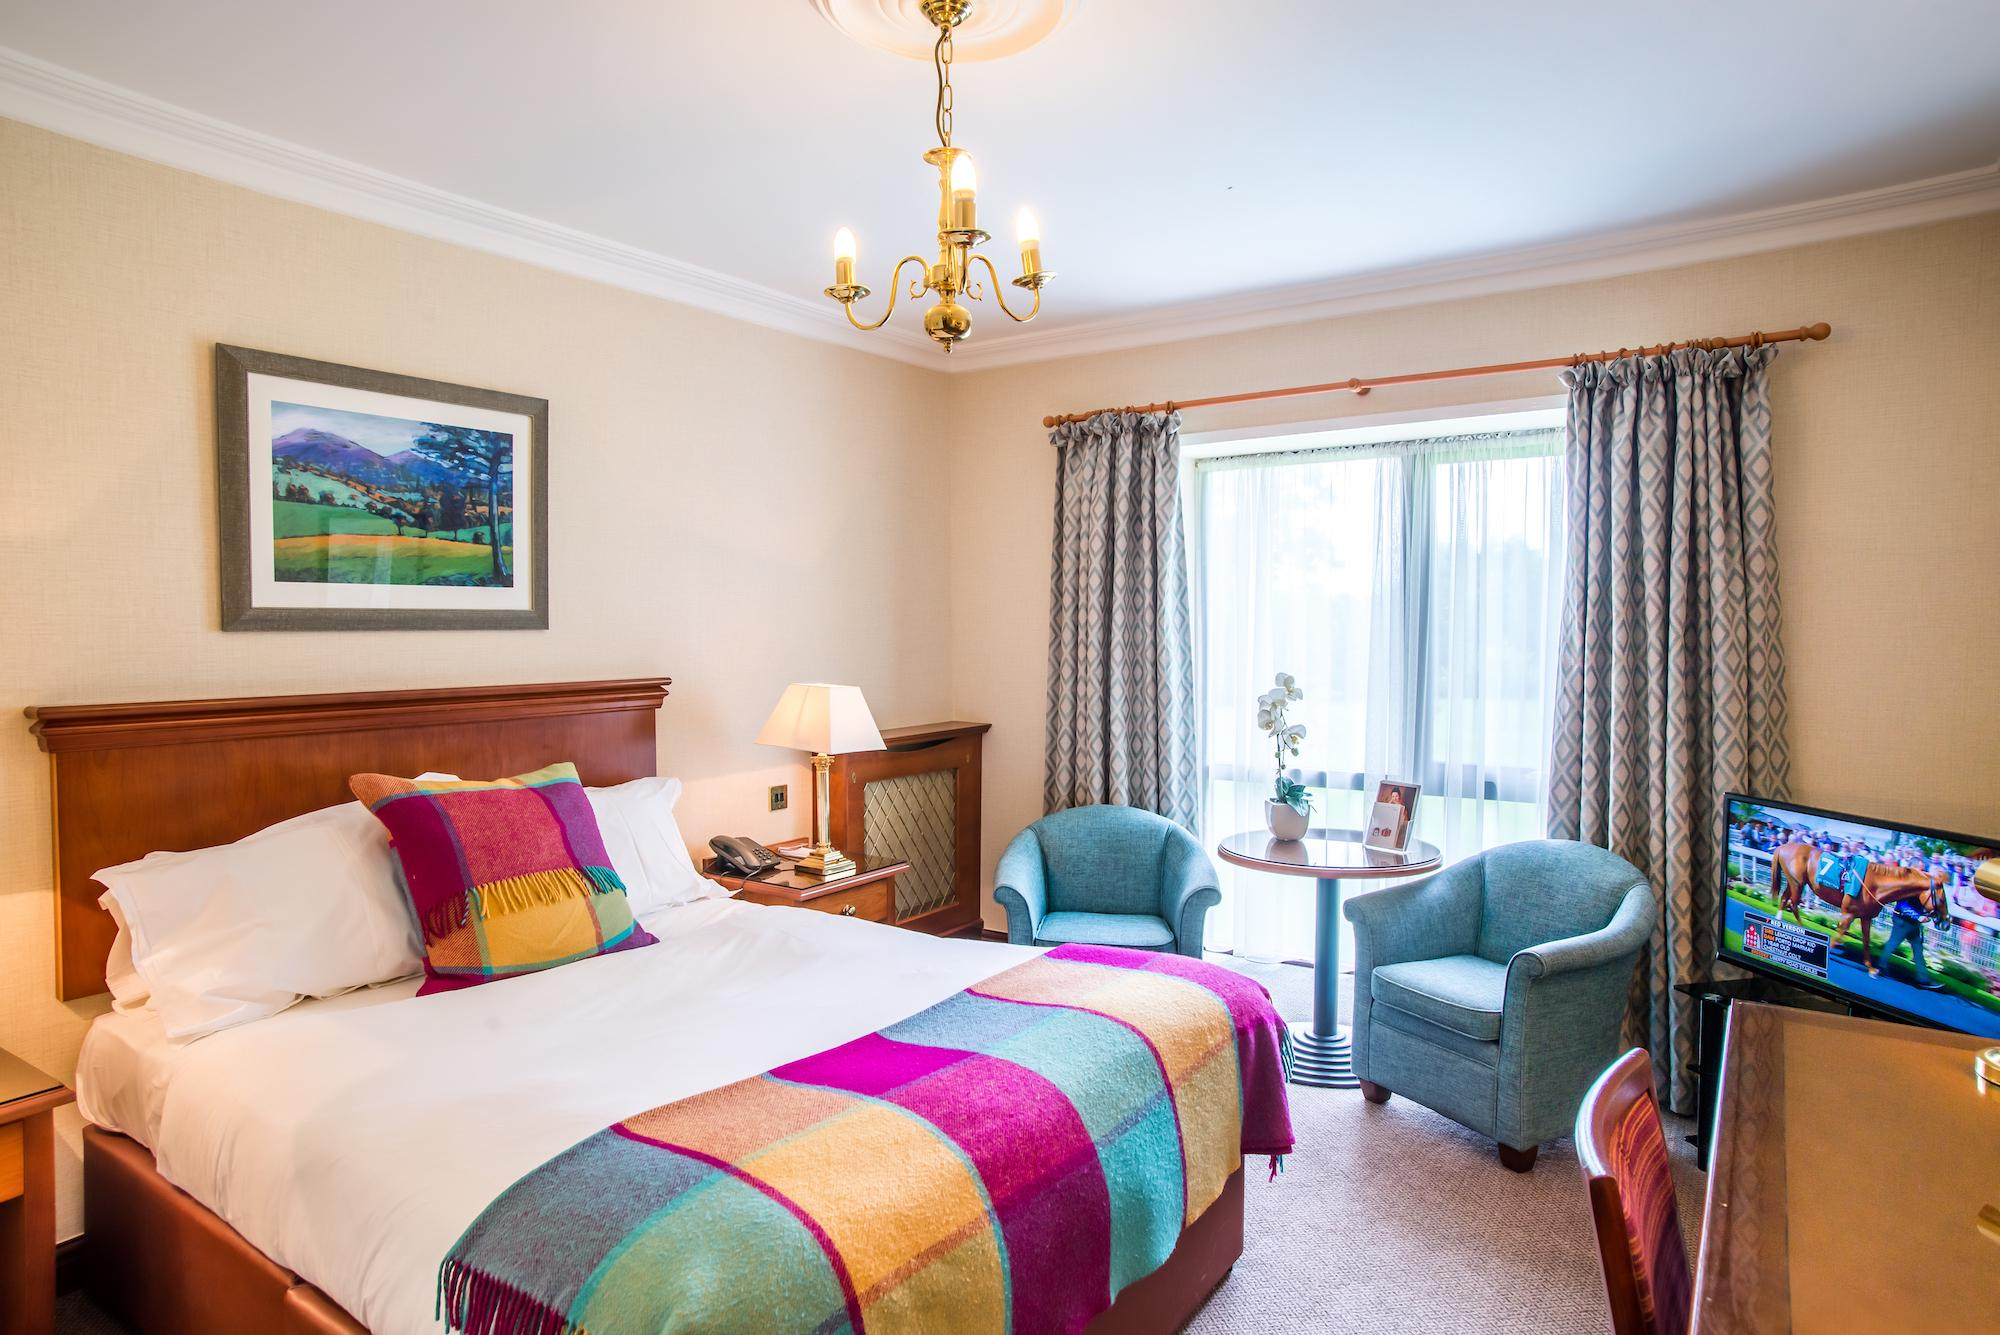 Hotels in South Wales holidays at Cool Places